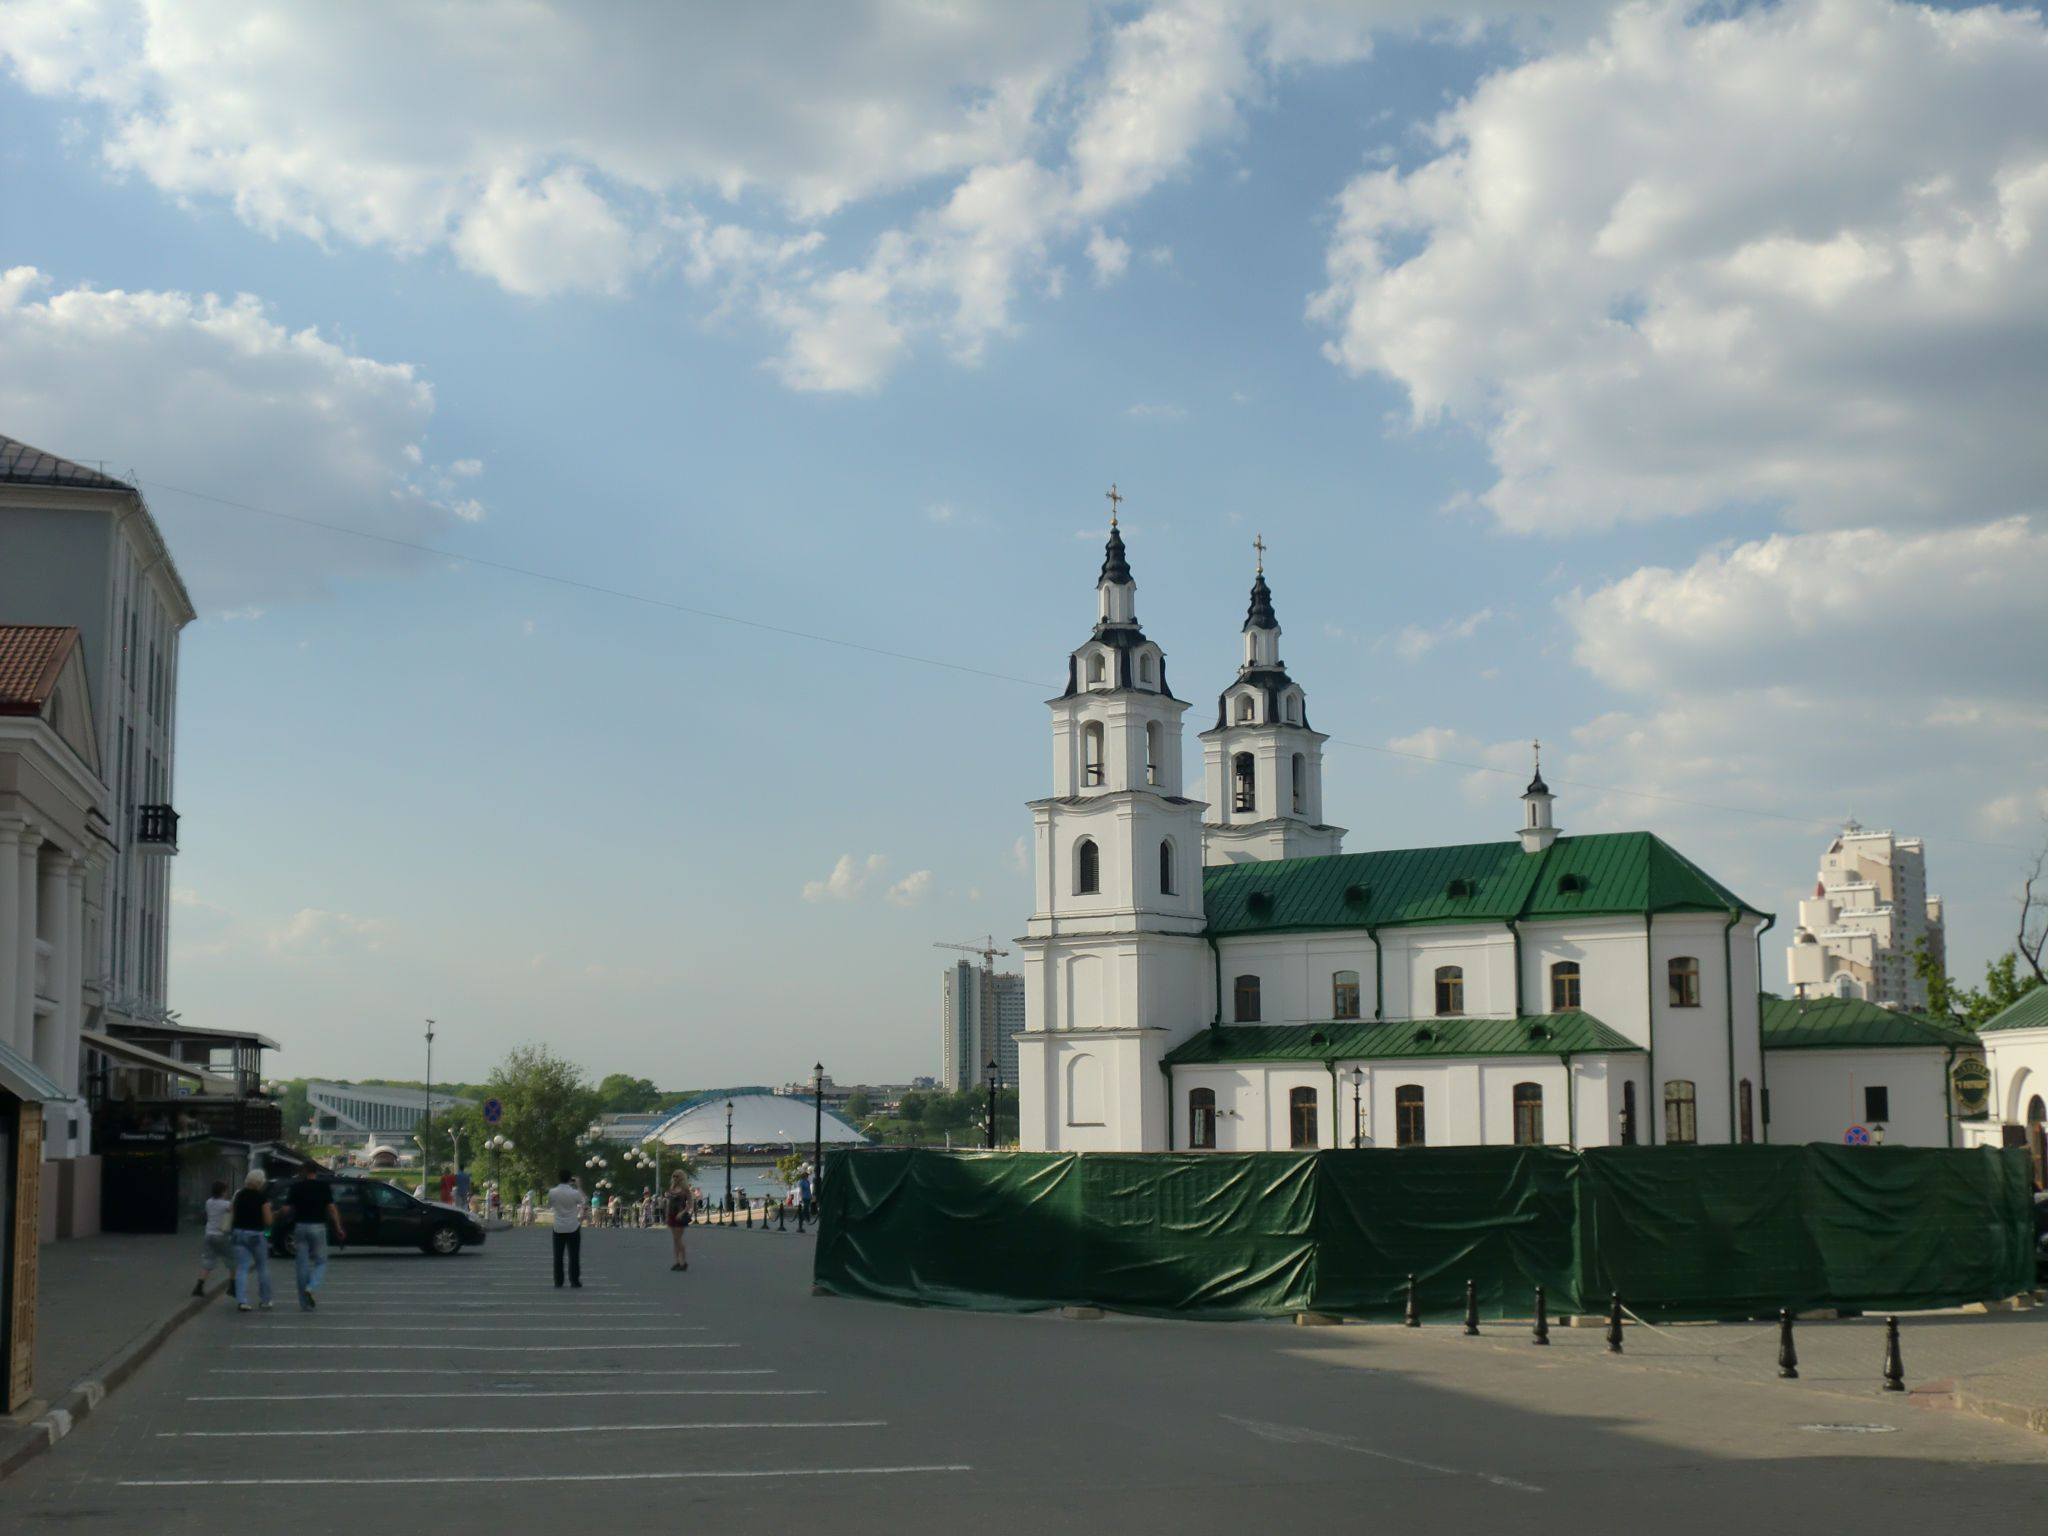 Minsk old town 8 - Minsk, 1 amazing city you have to see